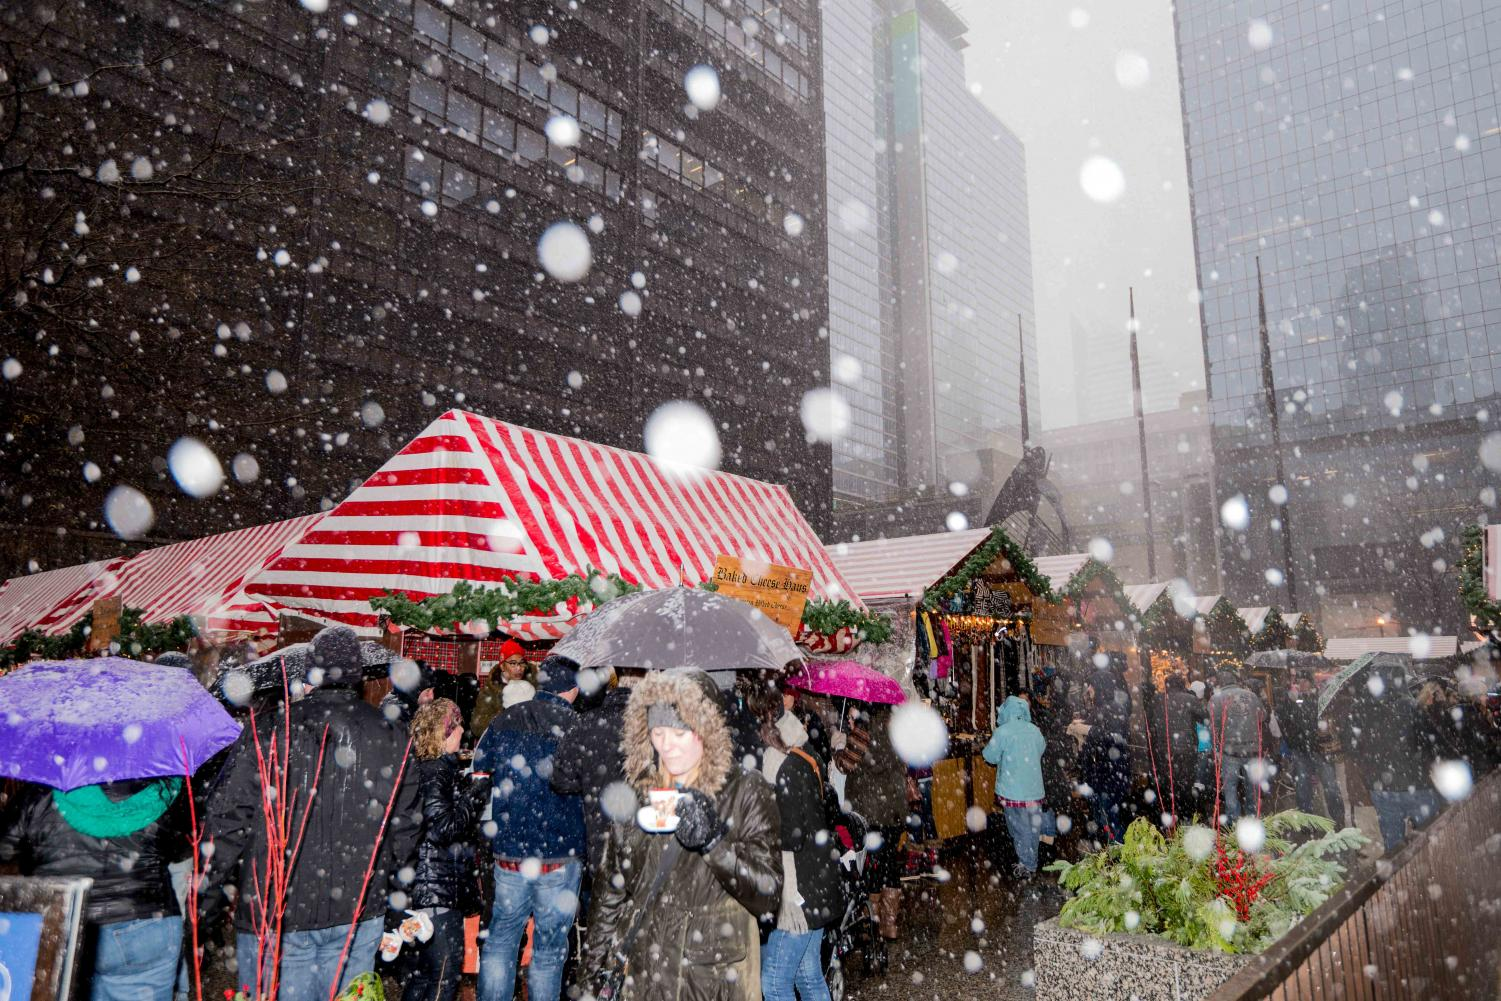 Daley Plaza during Christkindlmarket in Chicago.